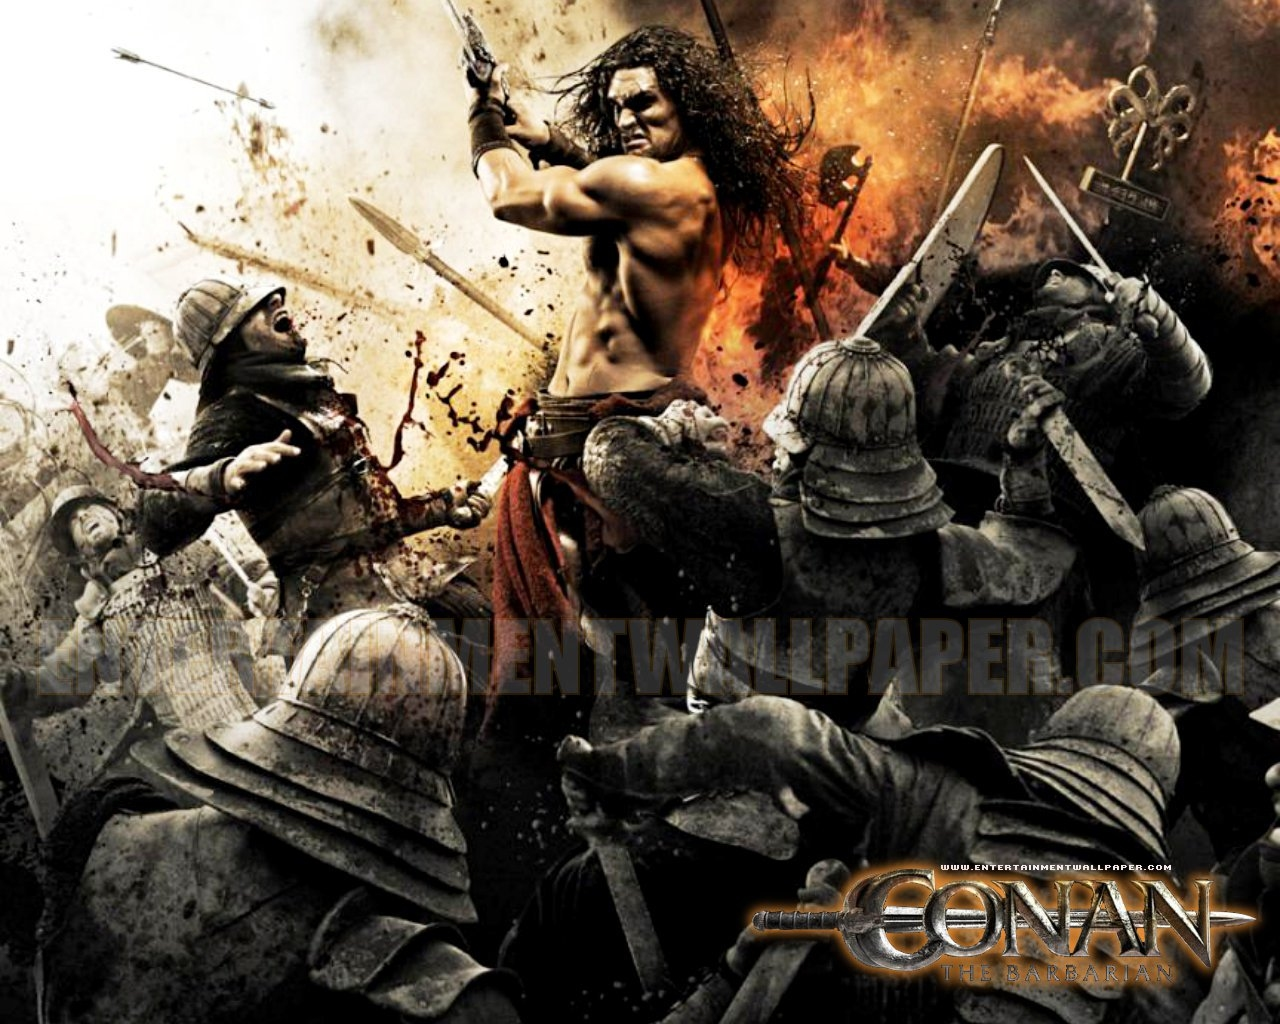 Conan The Barbarian Wallpaper 1280x1024